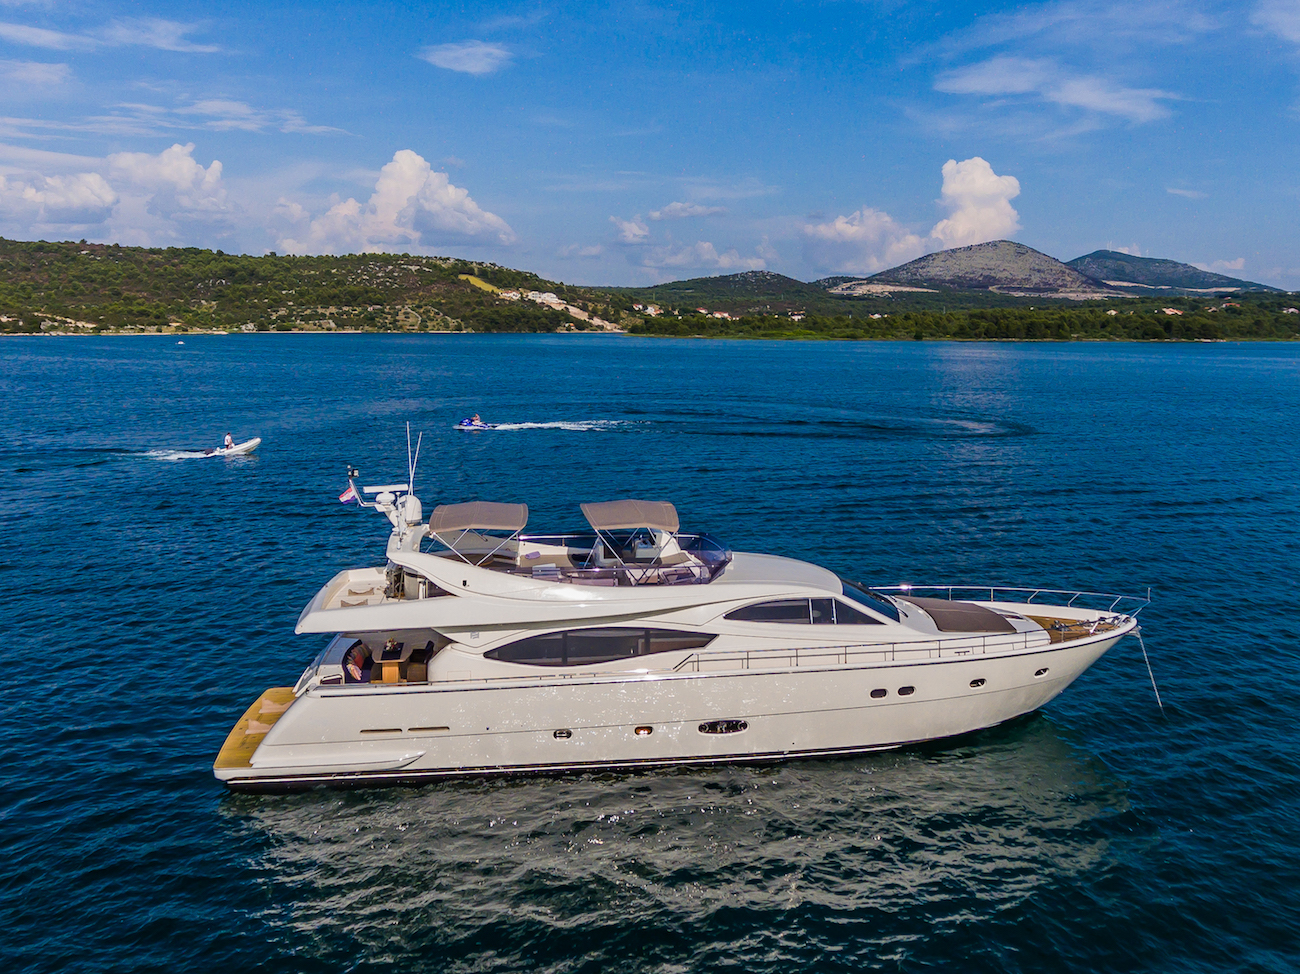 QUO VADIS I YACHT available for charter in Croatia